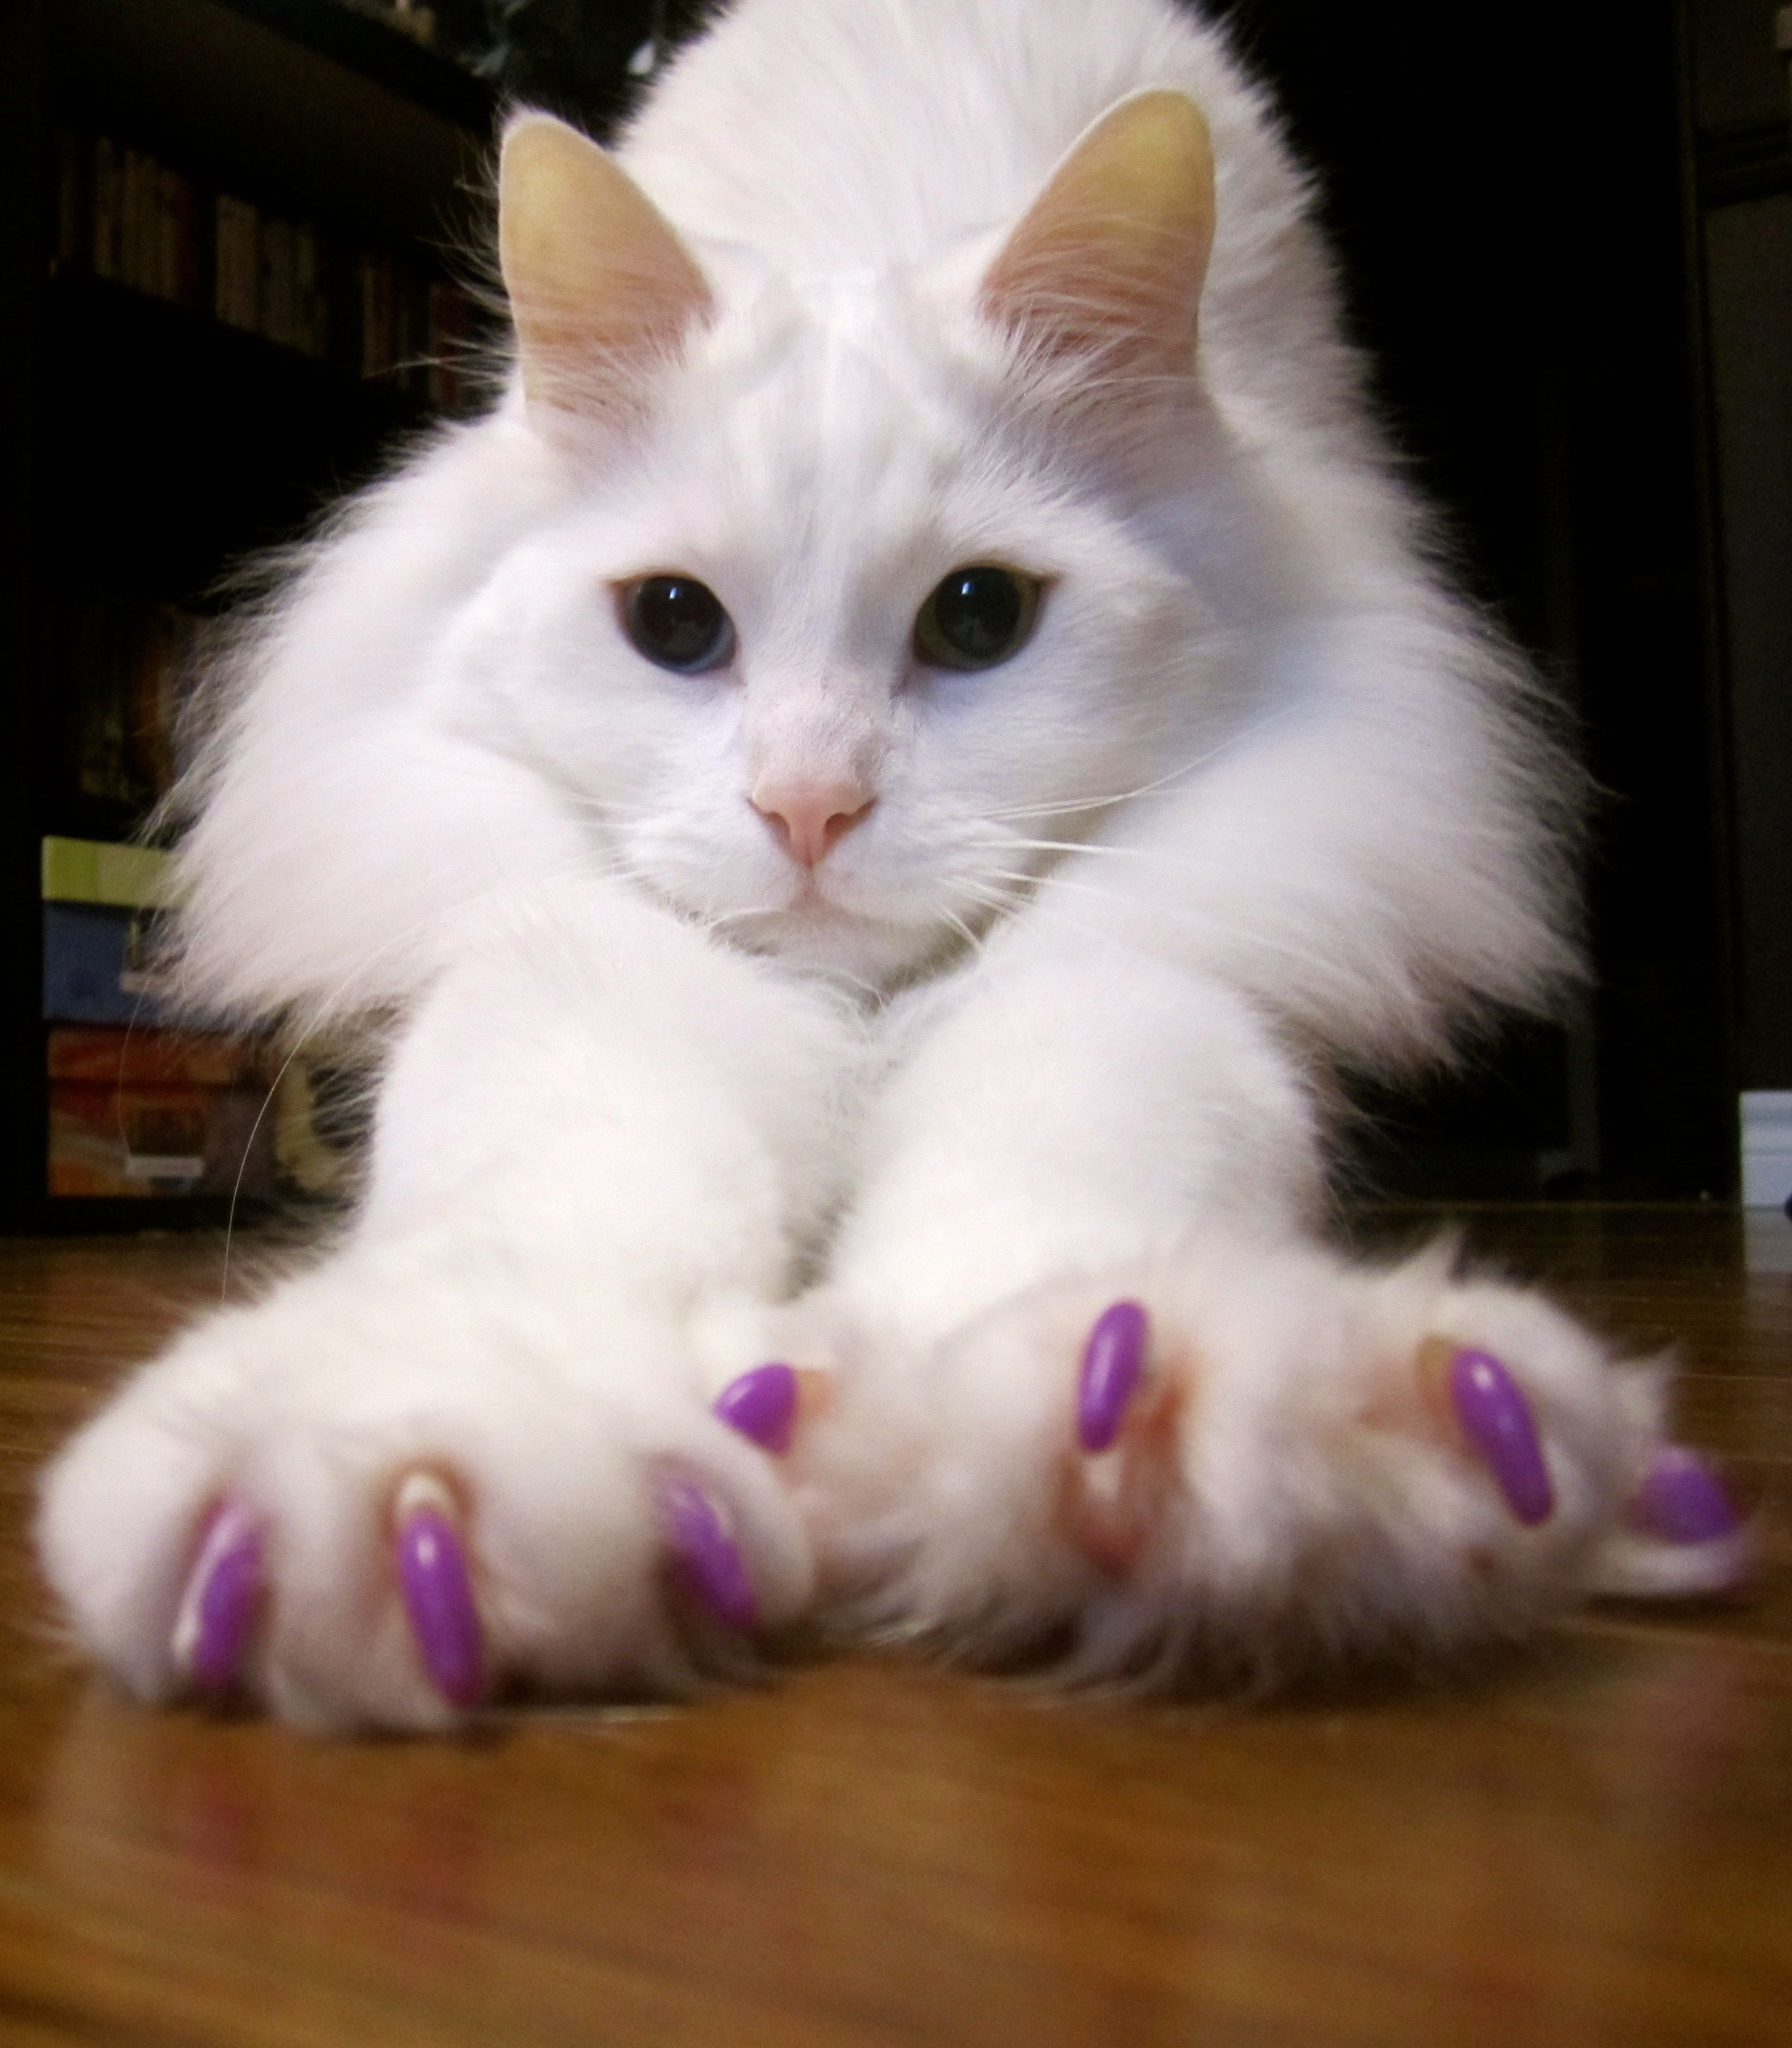 soft paws are the safe and humane alternative to declawing